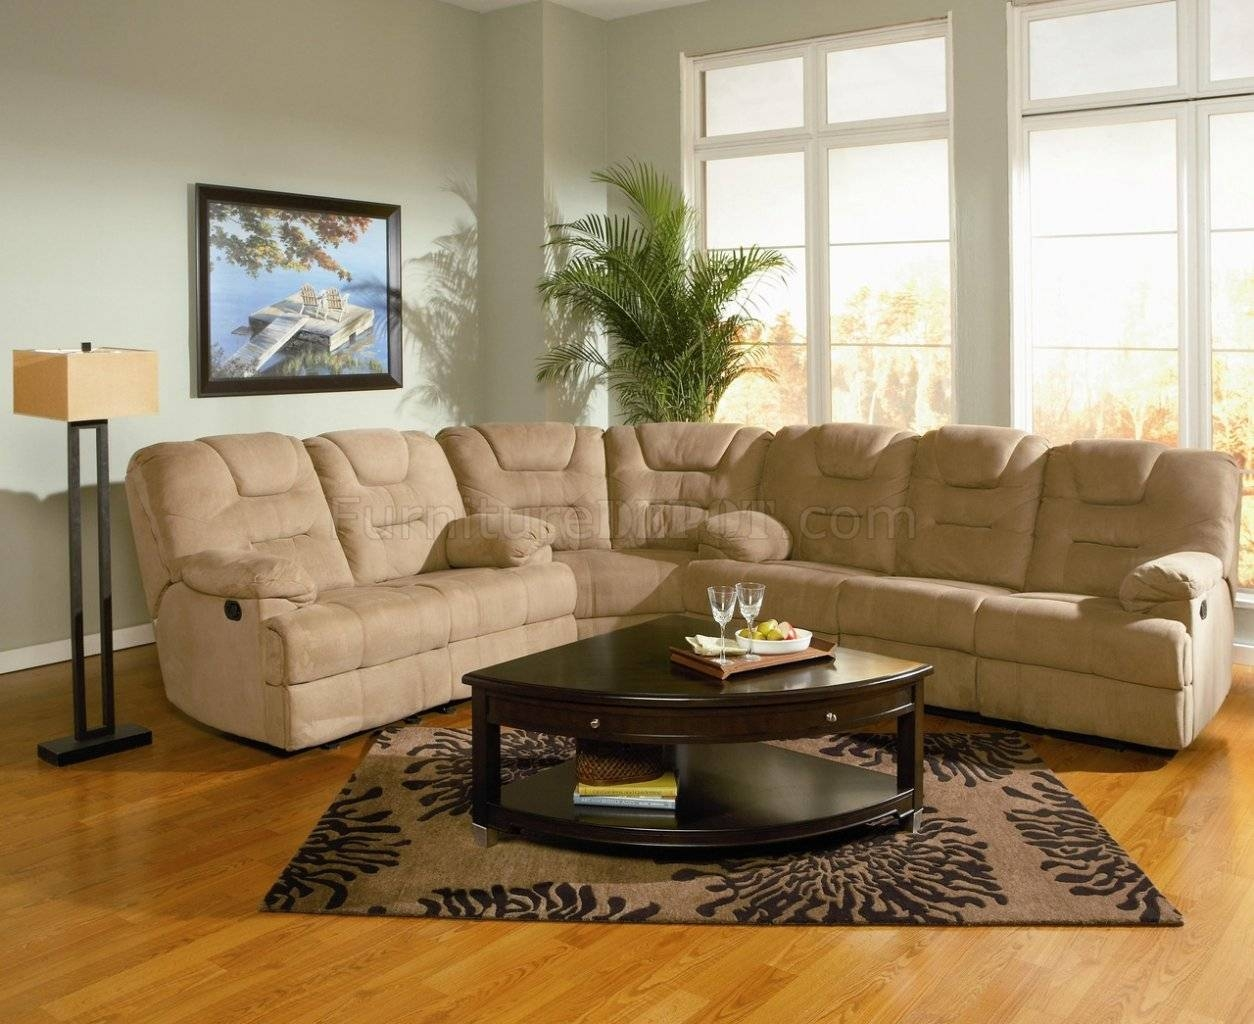 Modern Microfiber Reclining Sectional Sofa 600351 Mocha within Sofas With High Backs (Image 19 of 30)